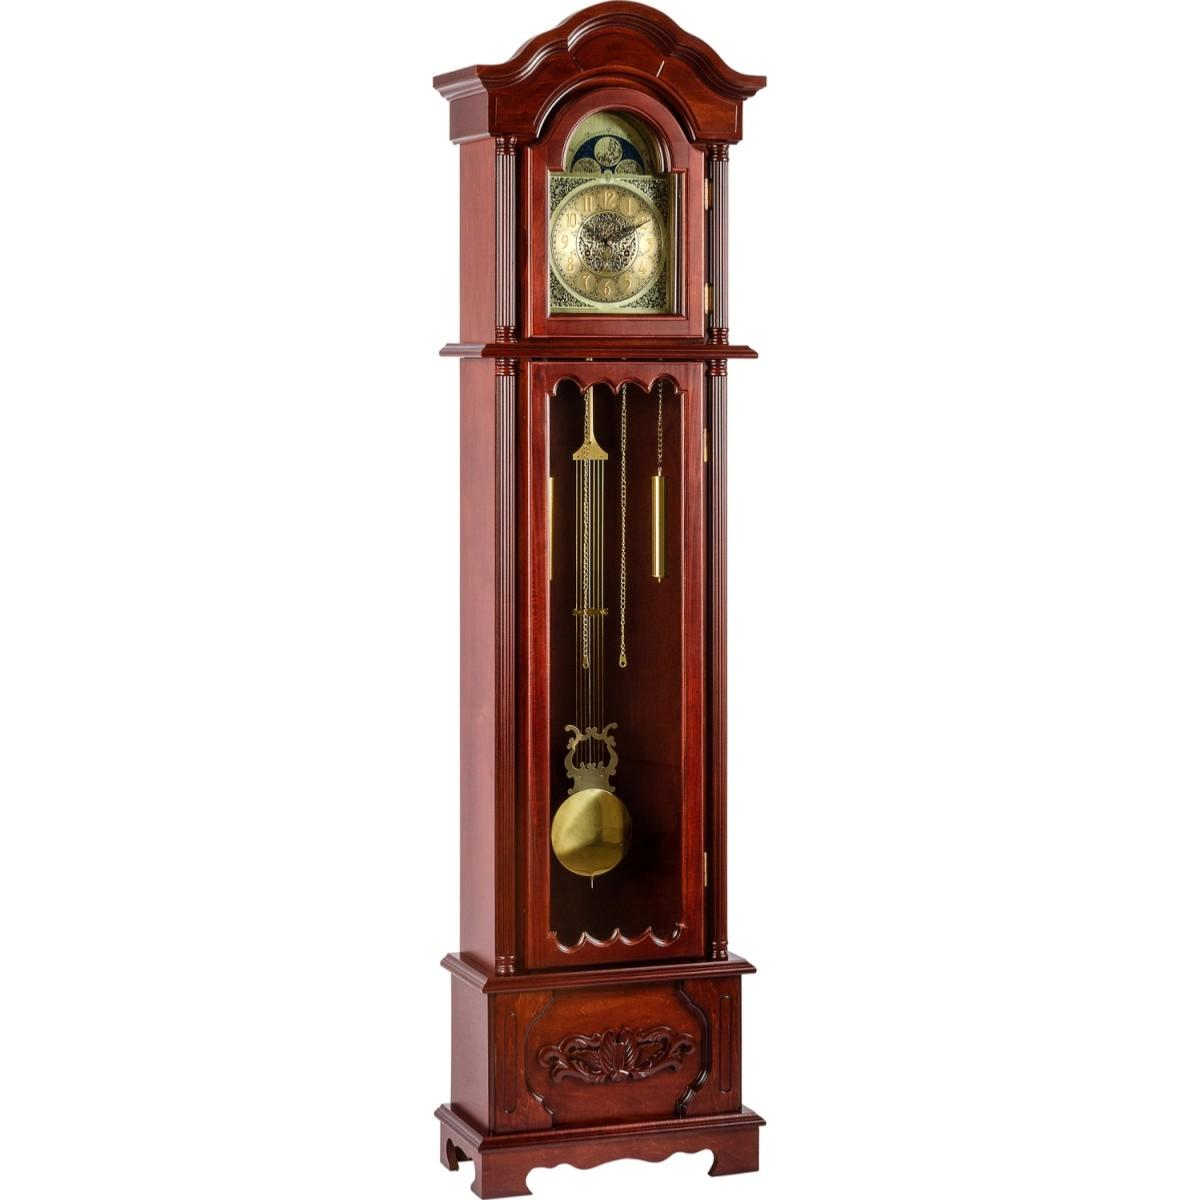 horloge pendule 200 cm style ancien acajou. Black Bedroom Furniture Sets. Home Design Ideas